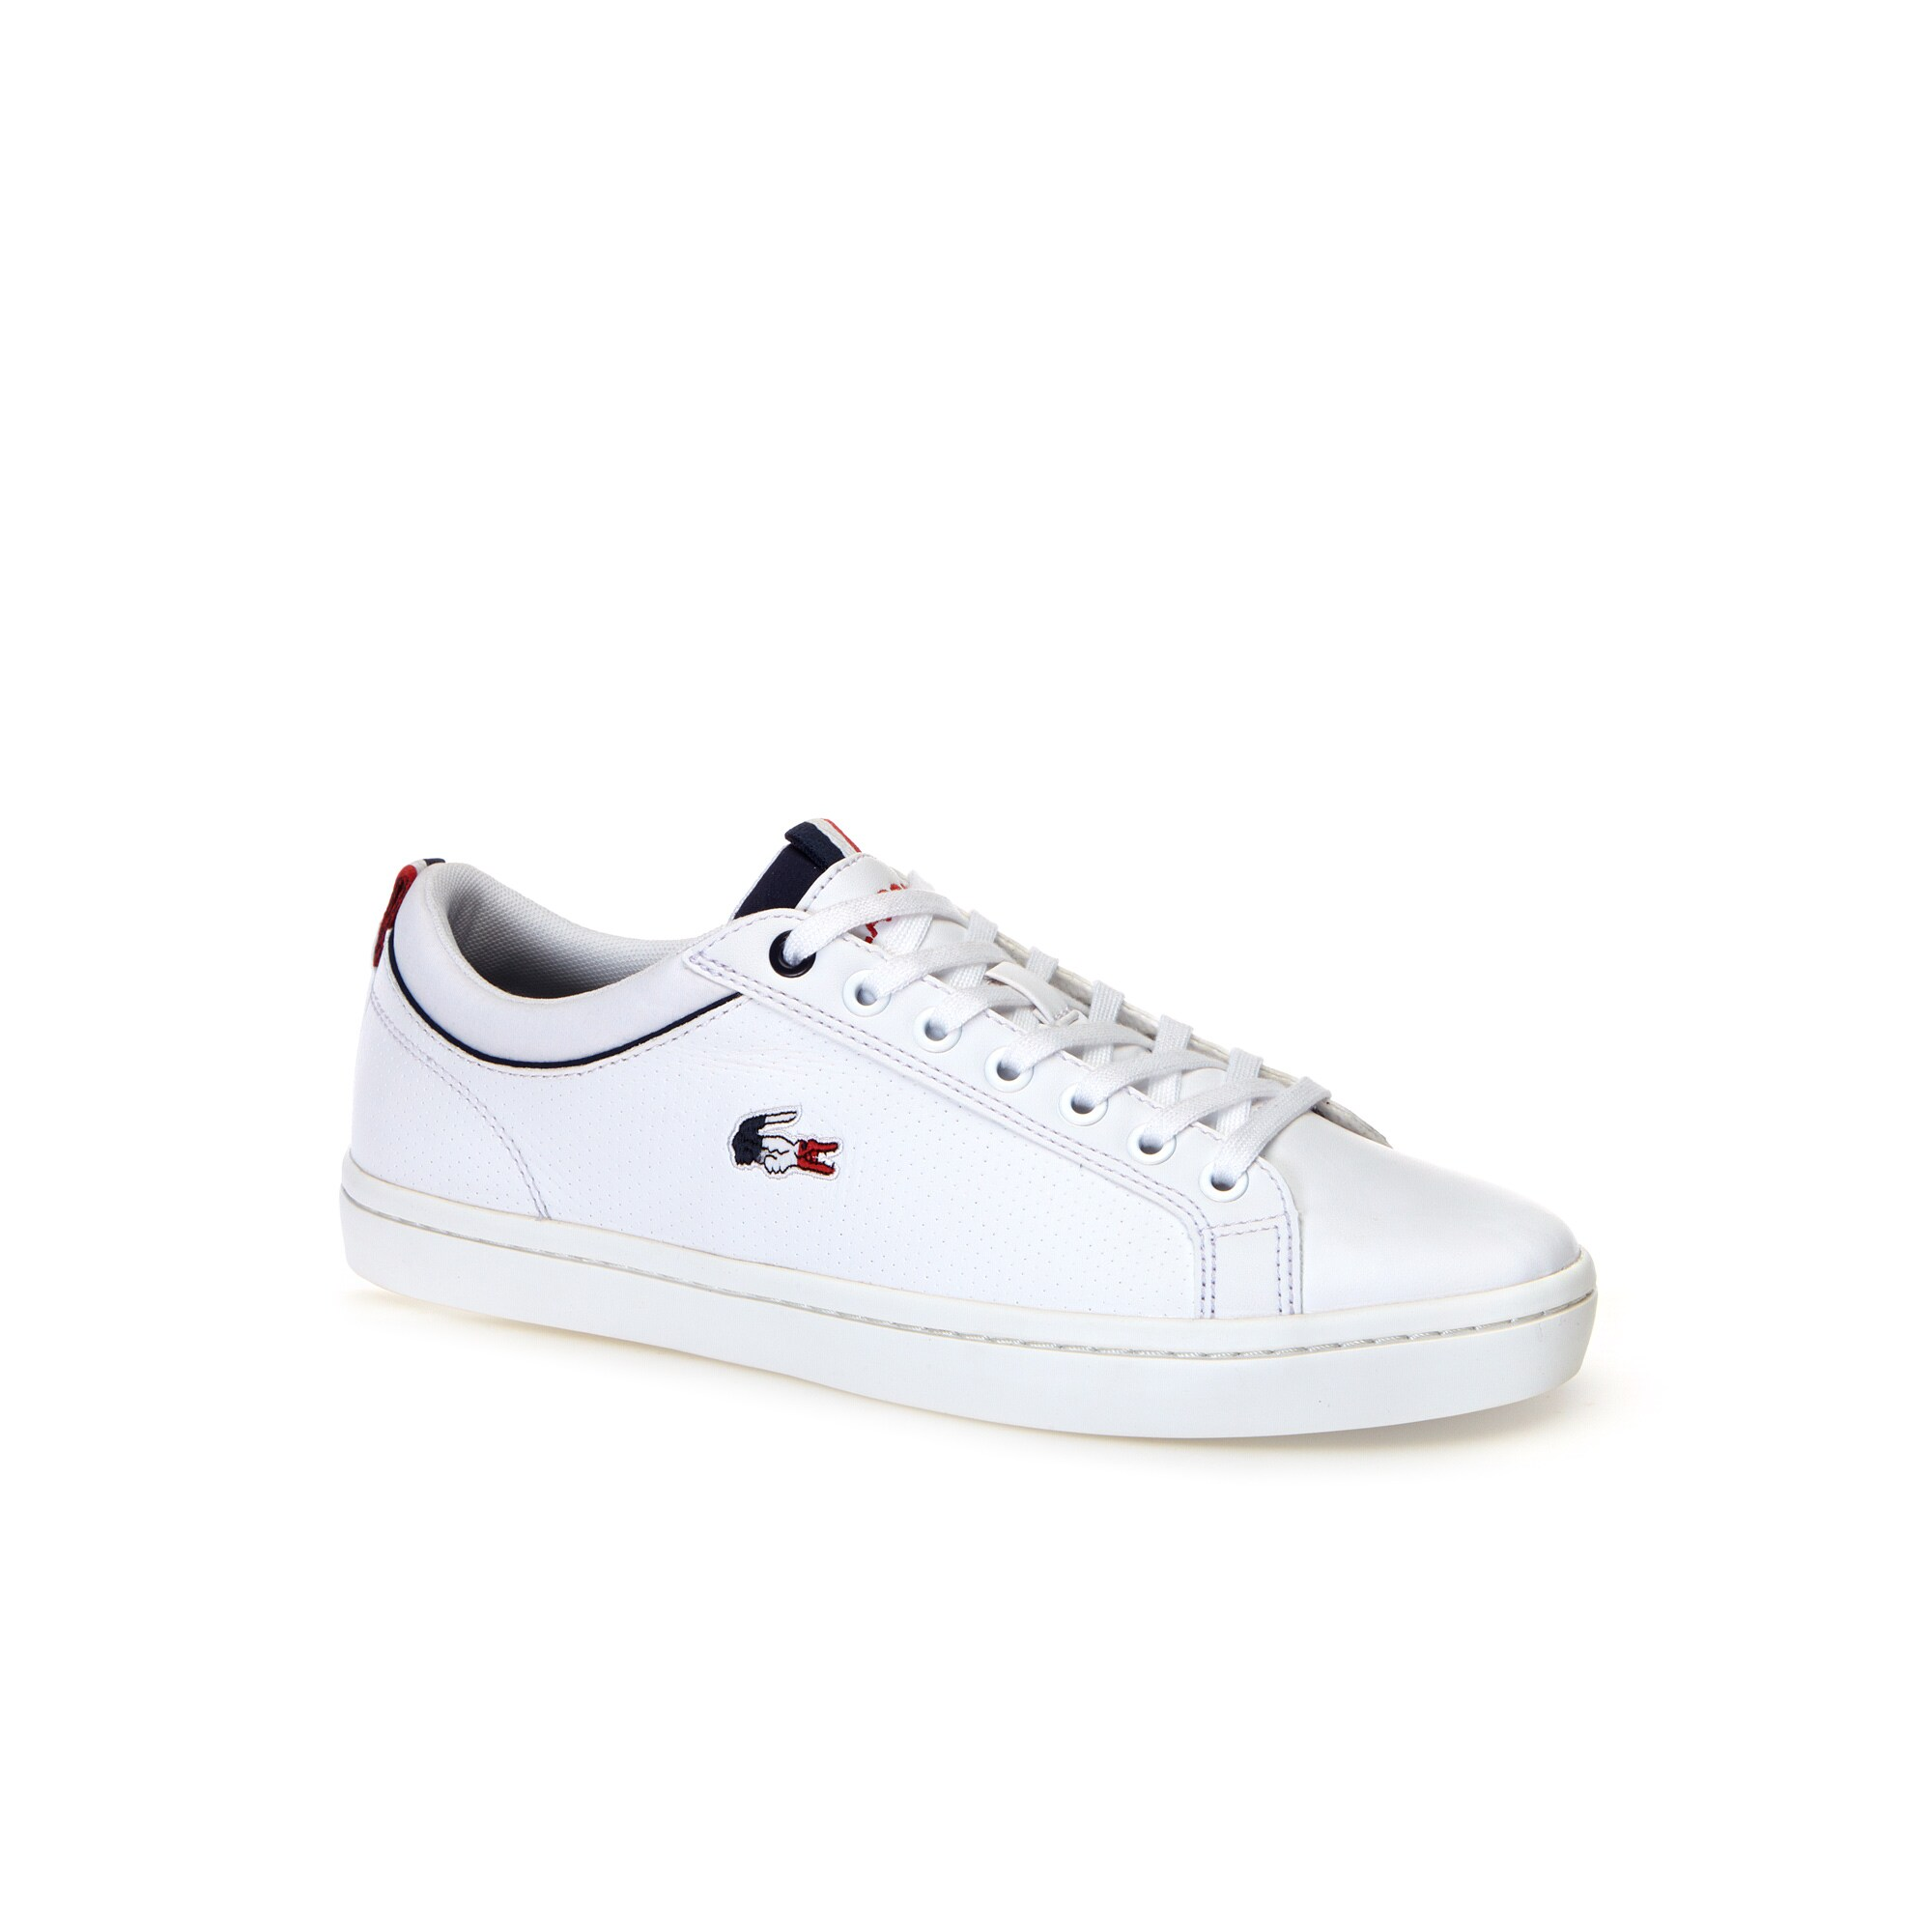 HommeCollection Lacoste Chaussures Lacoste Chaussures Lacoste Lacoste HommeCollection HommeCollection Chaussures HommeCollection HommeCollection Chaussures Chaussures LSzVqpUGM